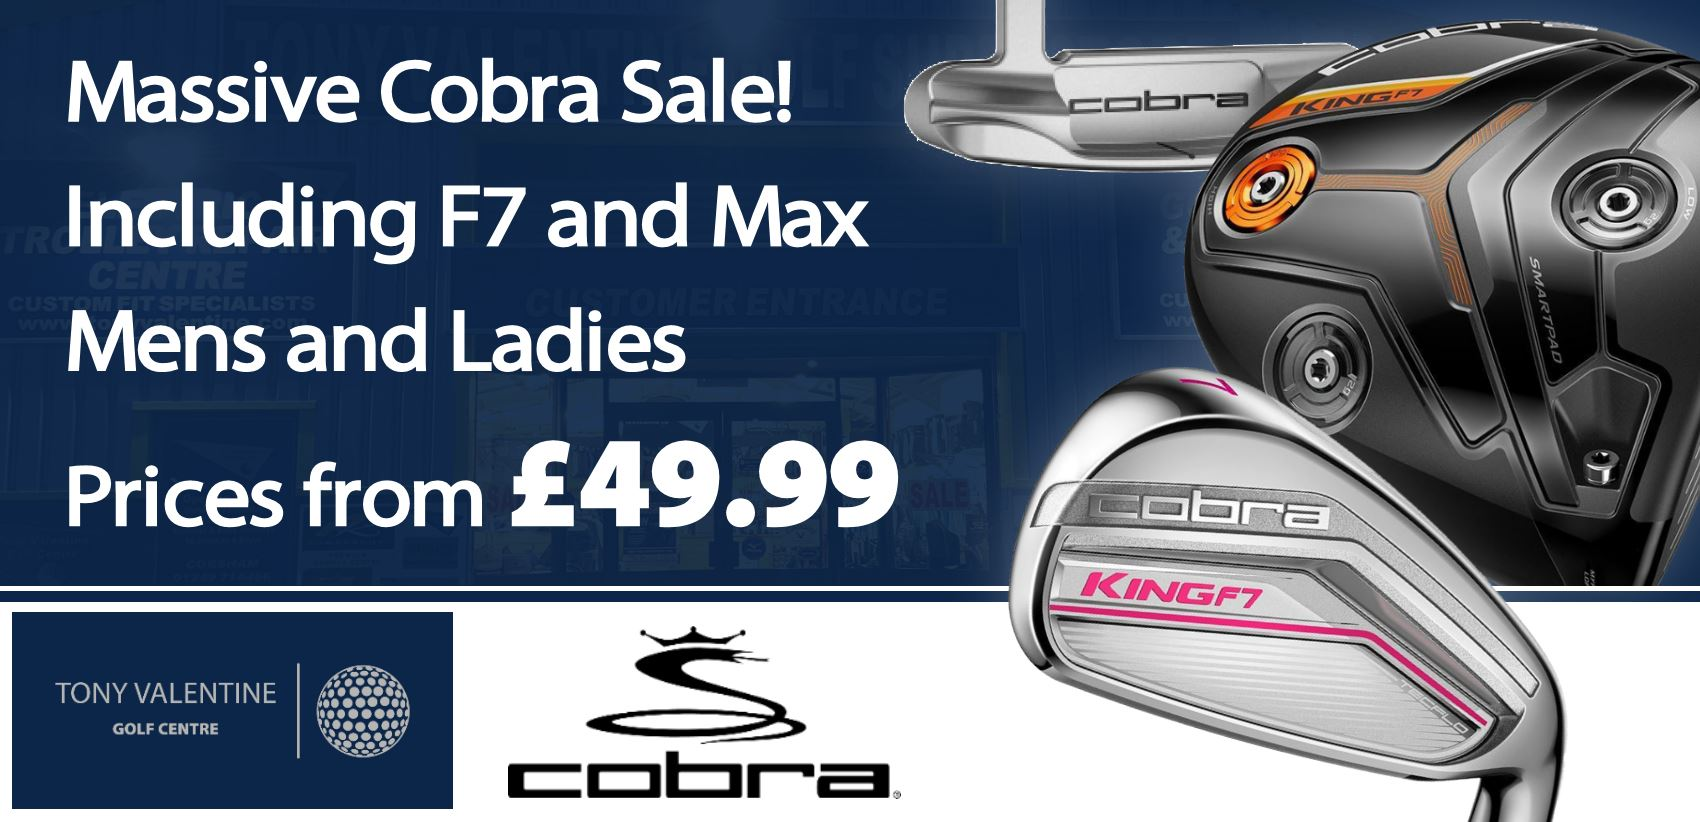 Massive Cobra Sale